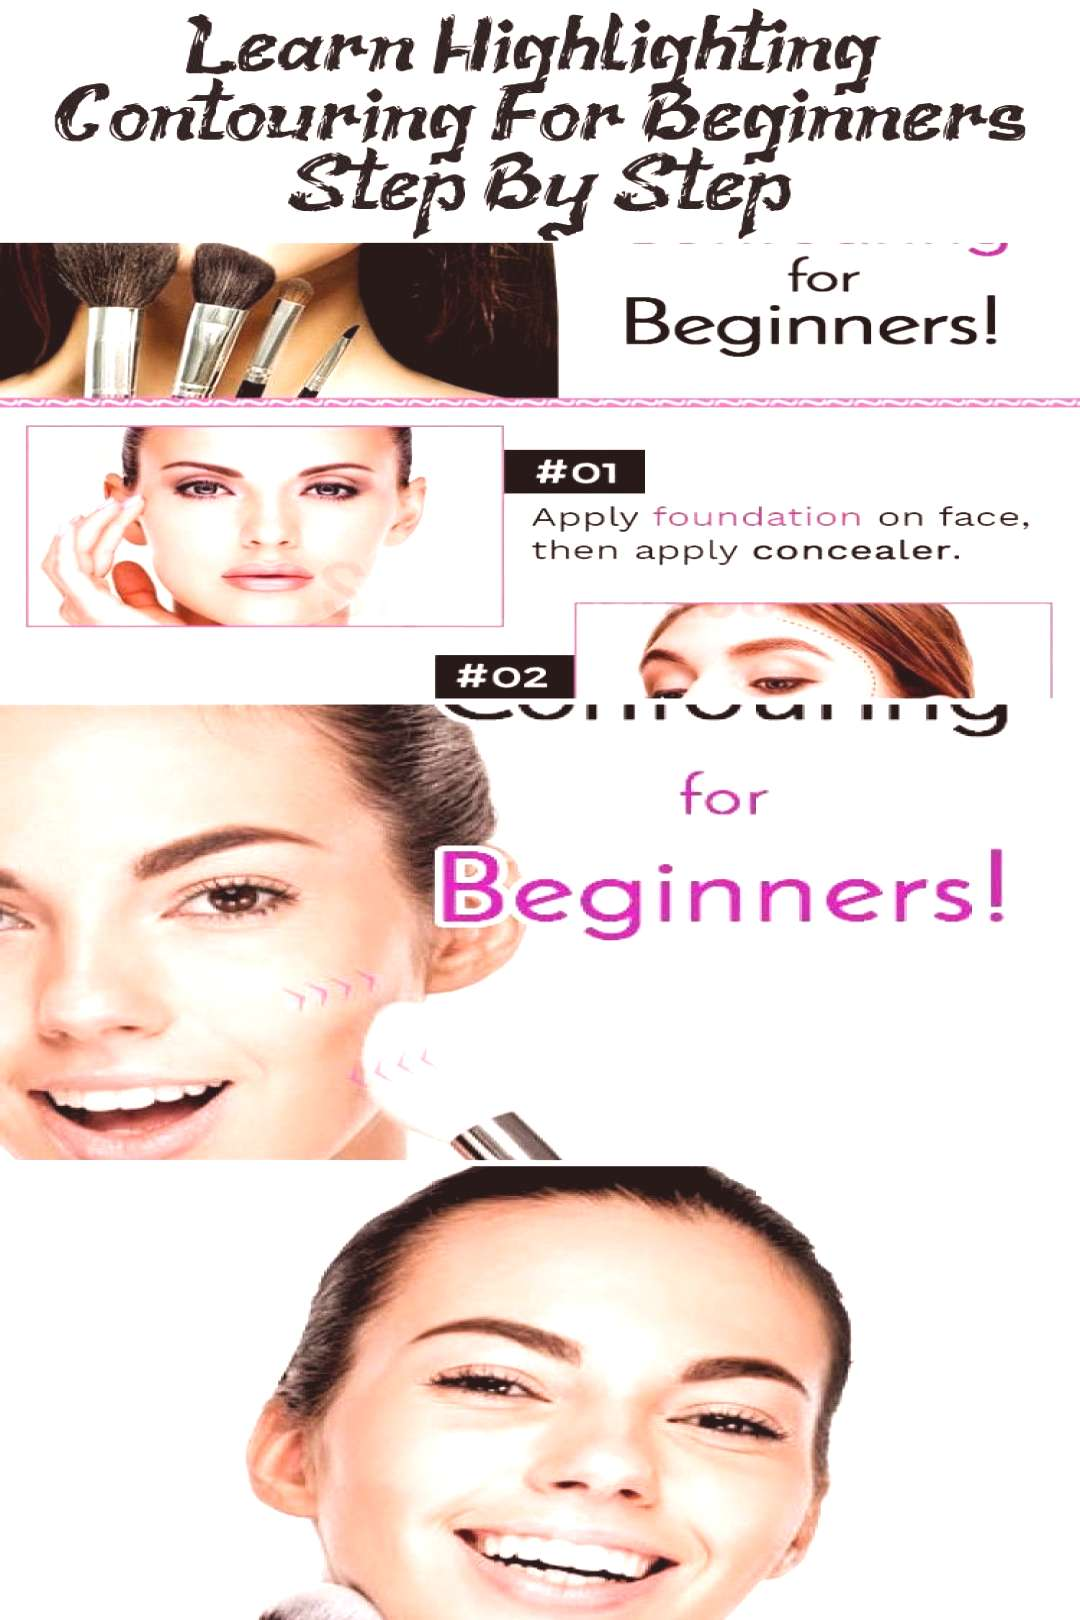 Learn Highlighting & Contouring For Beginners Step By Step… - Skys Blog -  Hig...#beginners